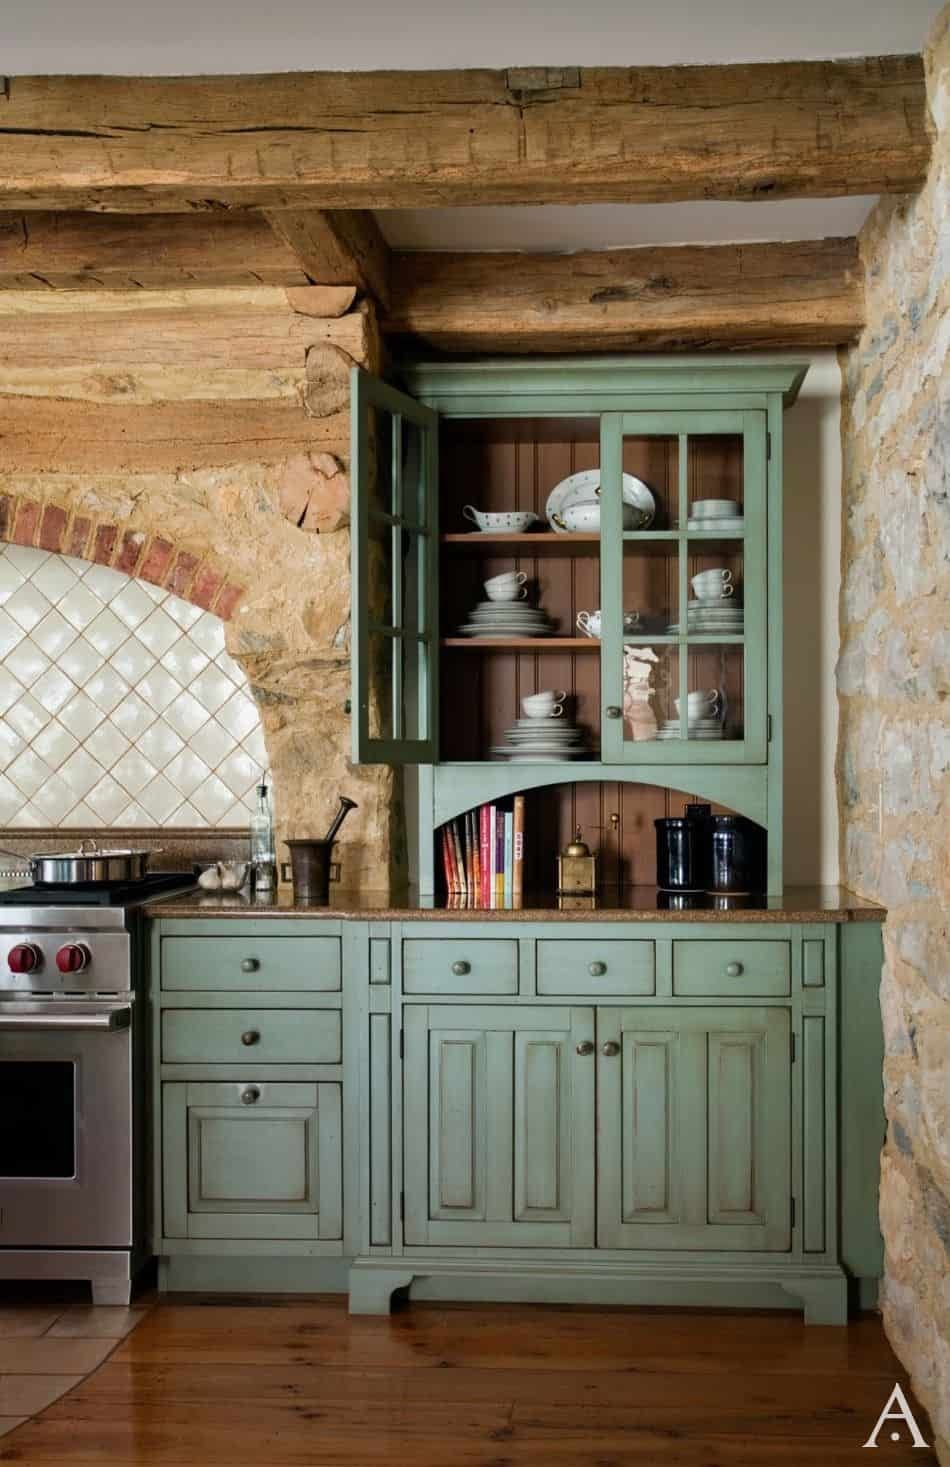 Country Kitchen Cabinets With Exposed Stone Walls By Periodarchitectureltd Com Rustic Kitchen Cabinets Rustic Kitchen Farmhouse Kitchen Design